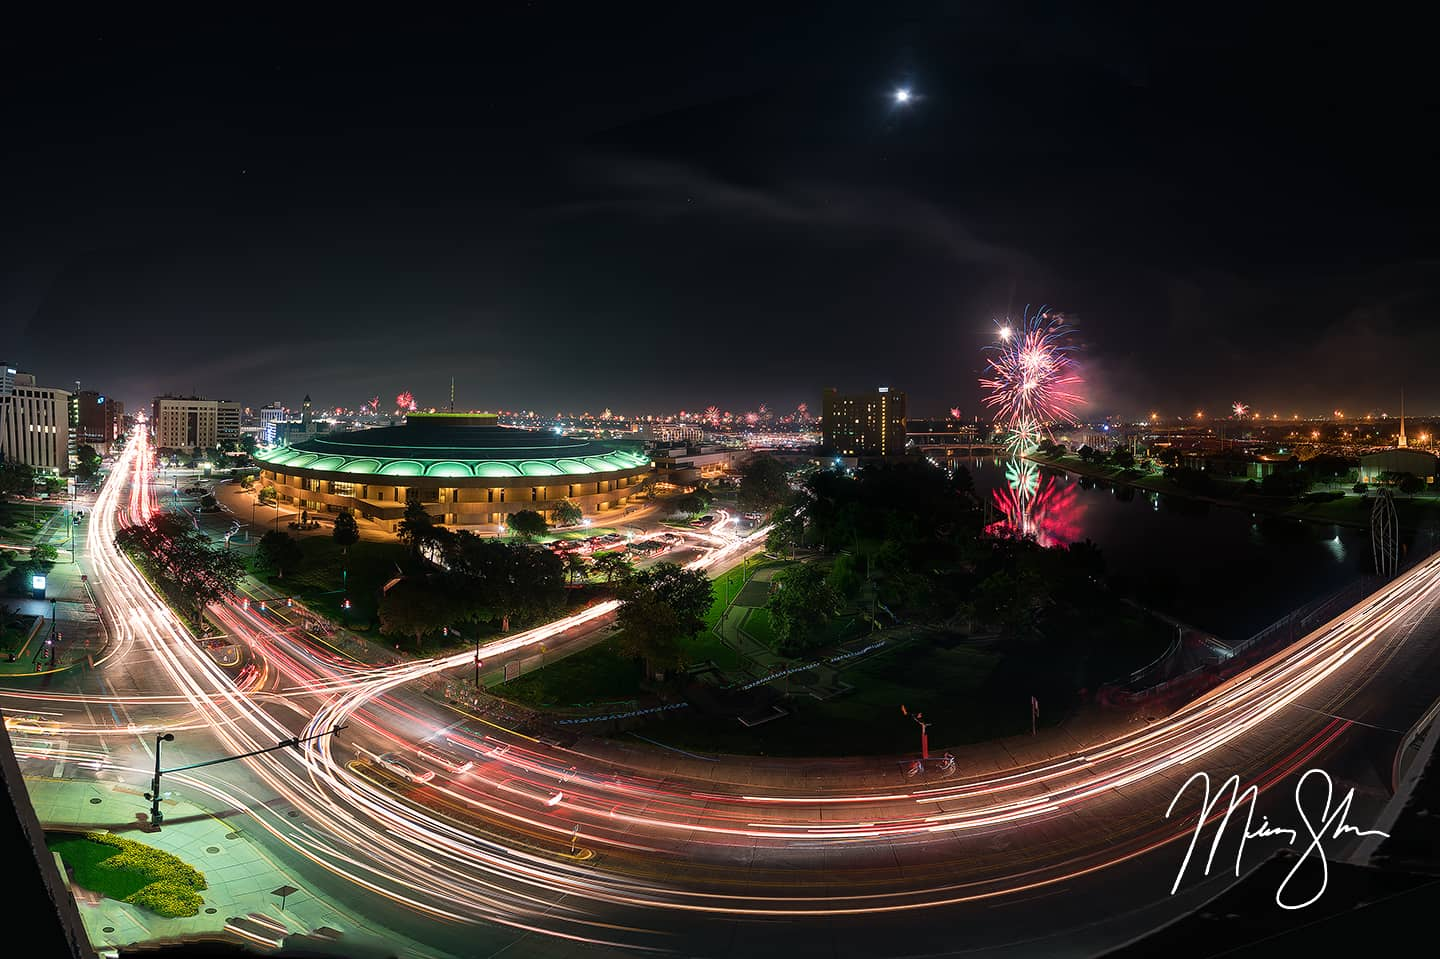 Wichita Independence Day Fireworks Panorama - Wichita, Kansas